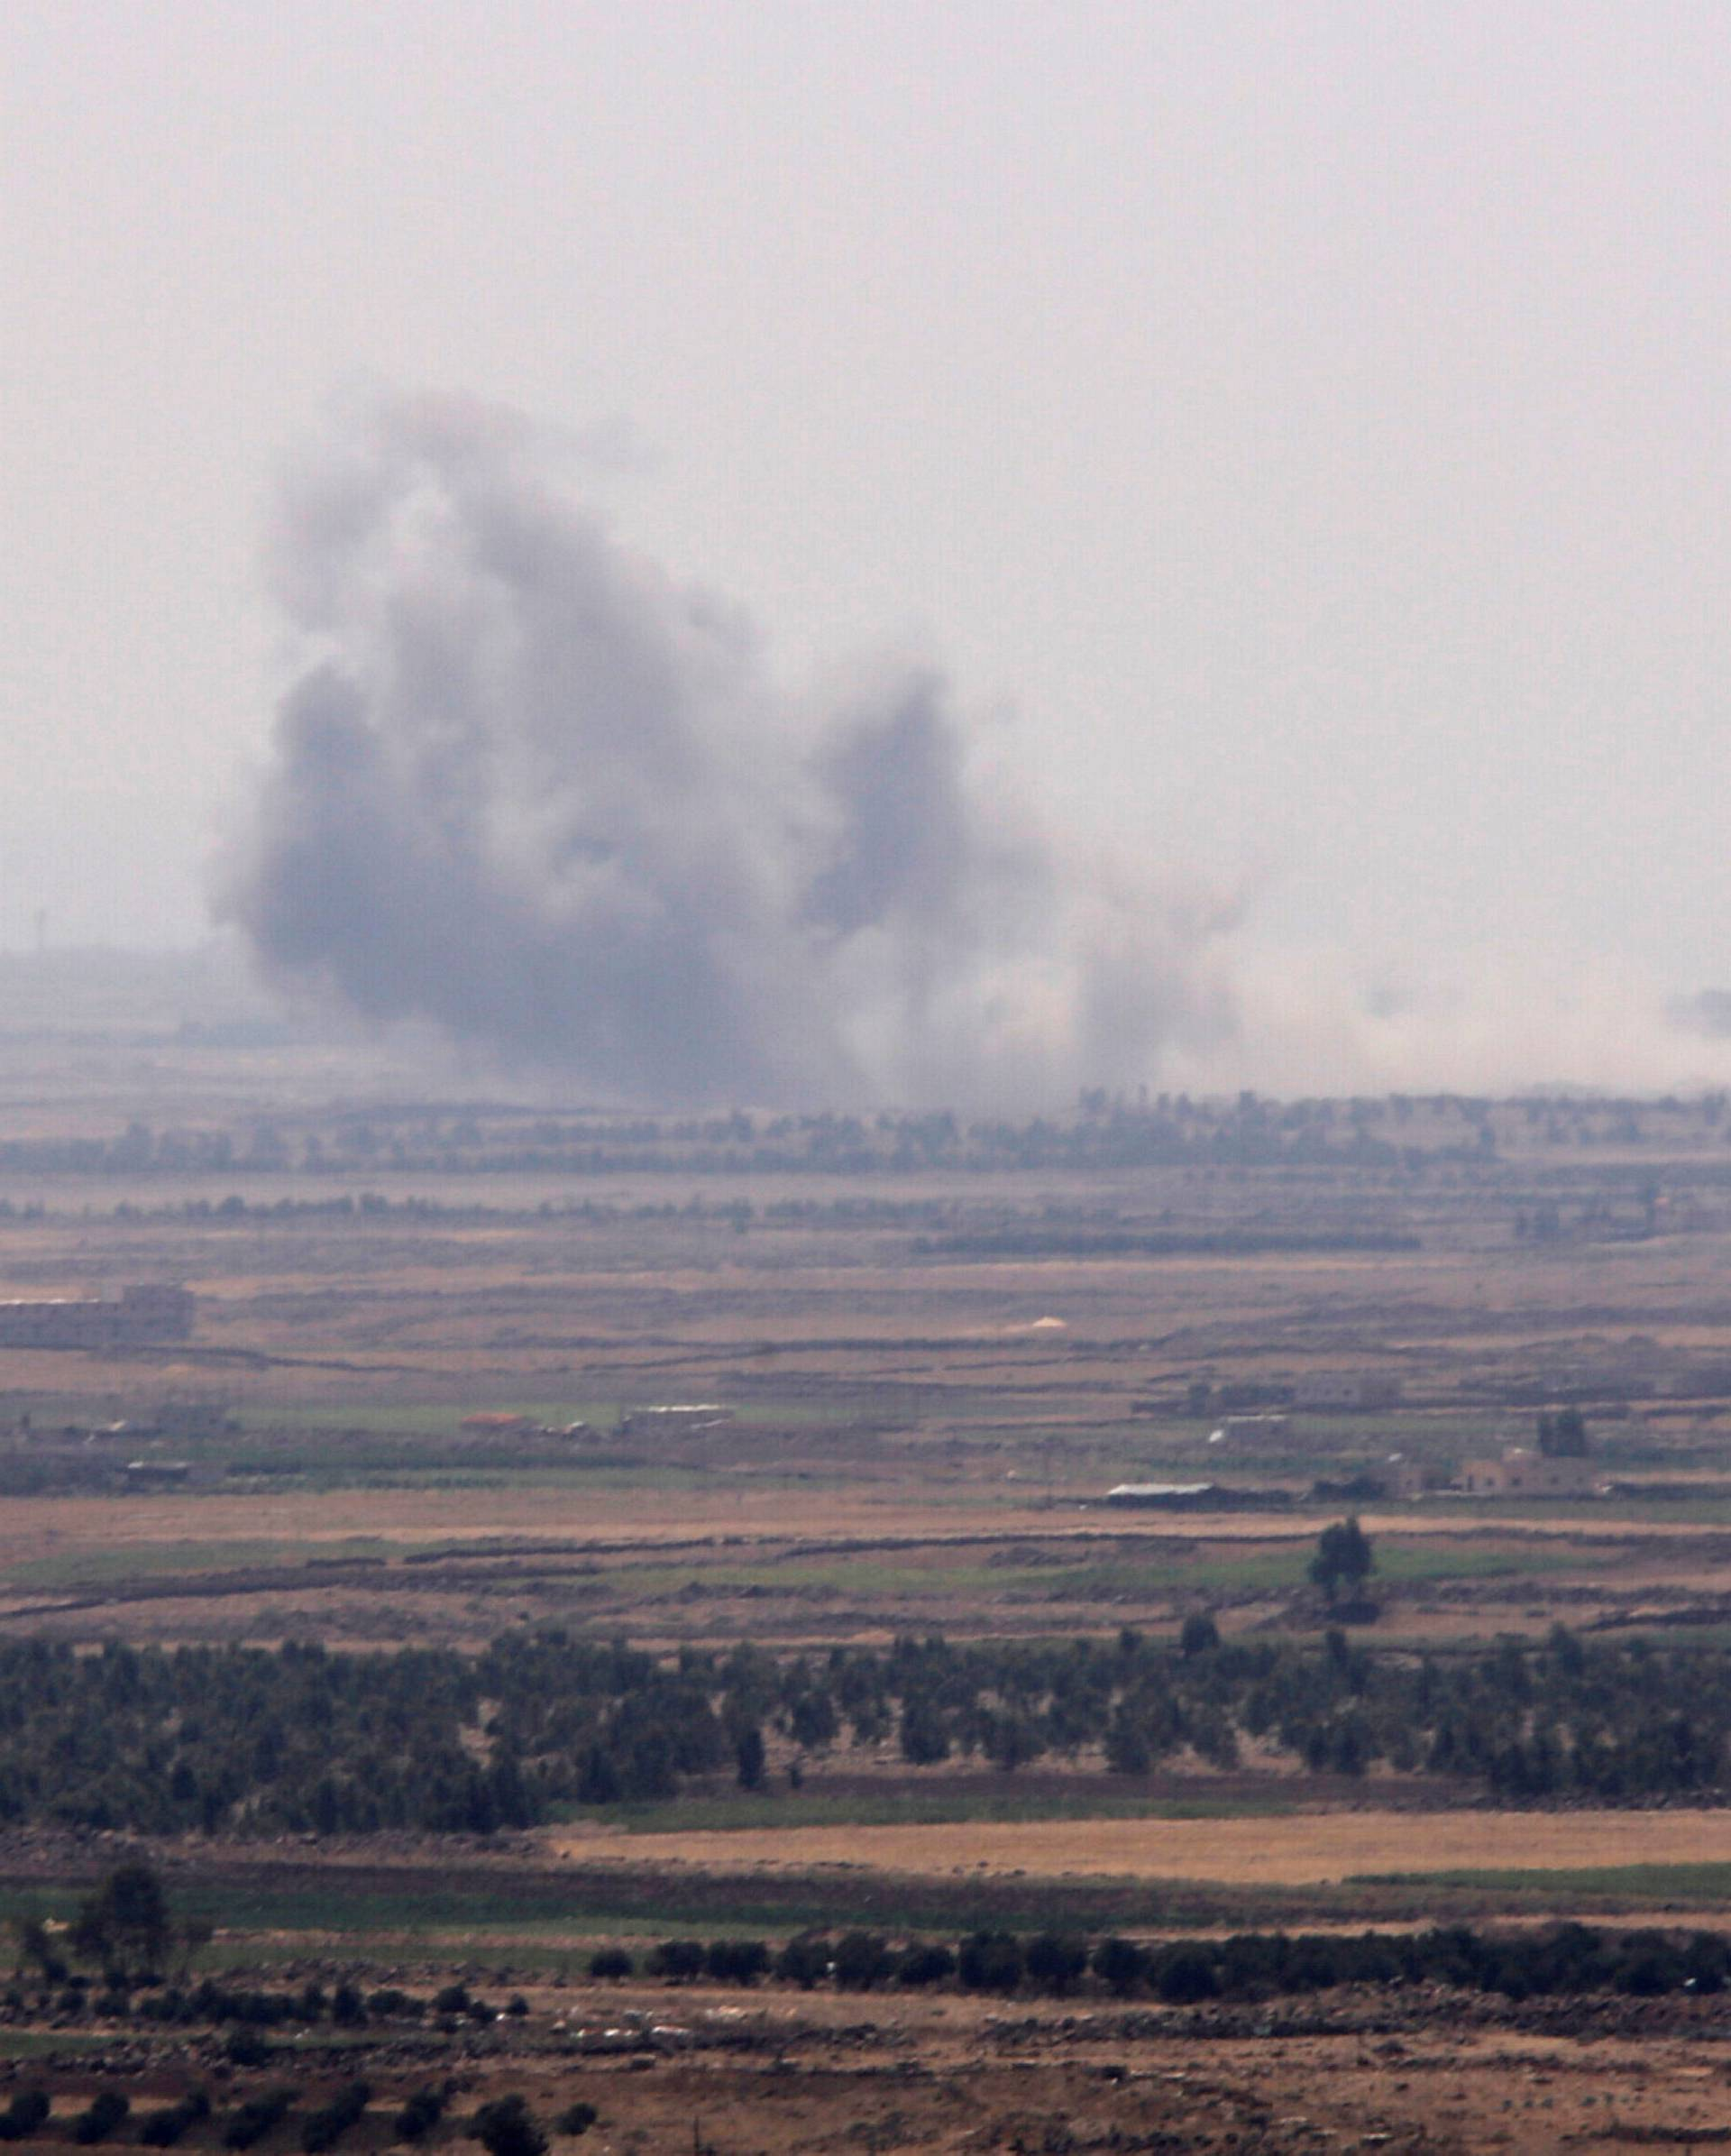 Smoke rises from al Yarmouk valley in Quneitra